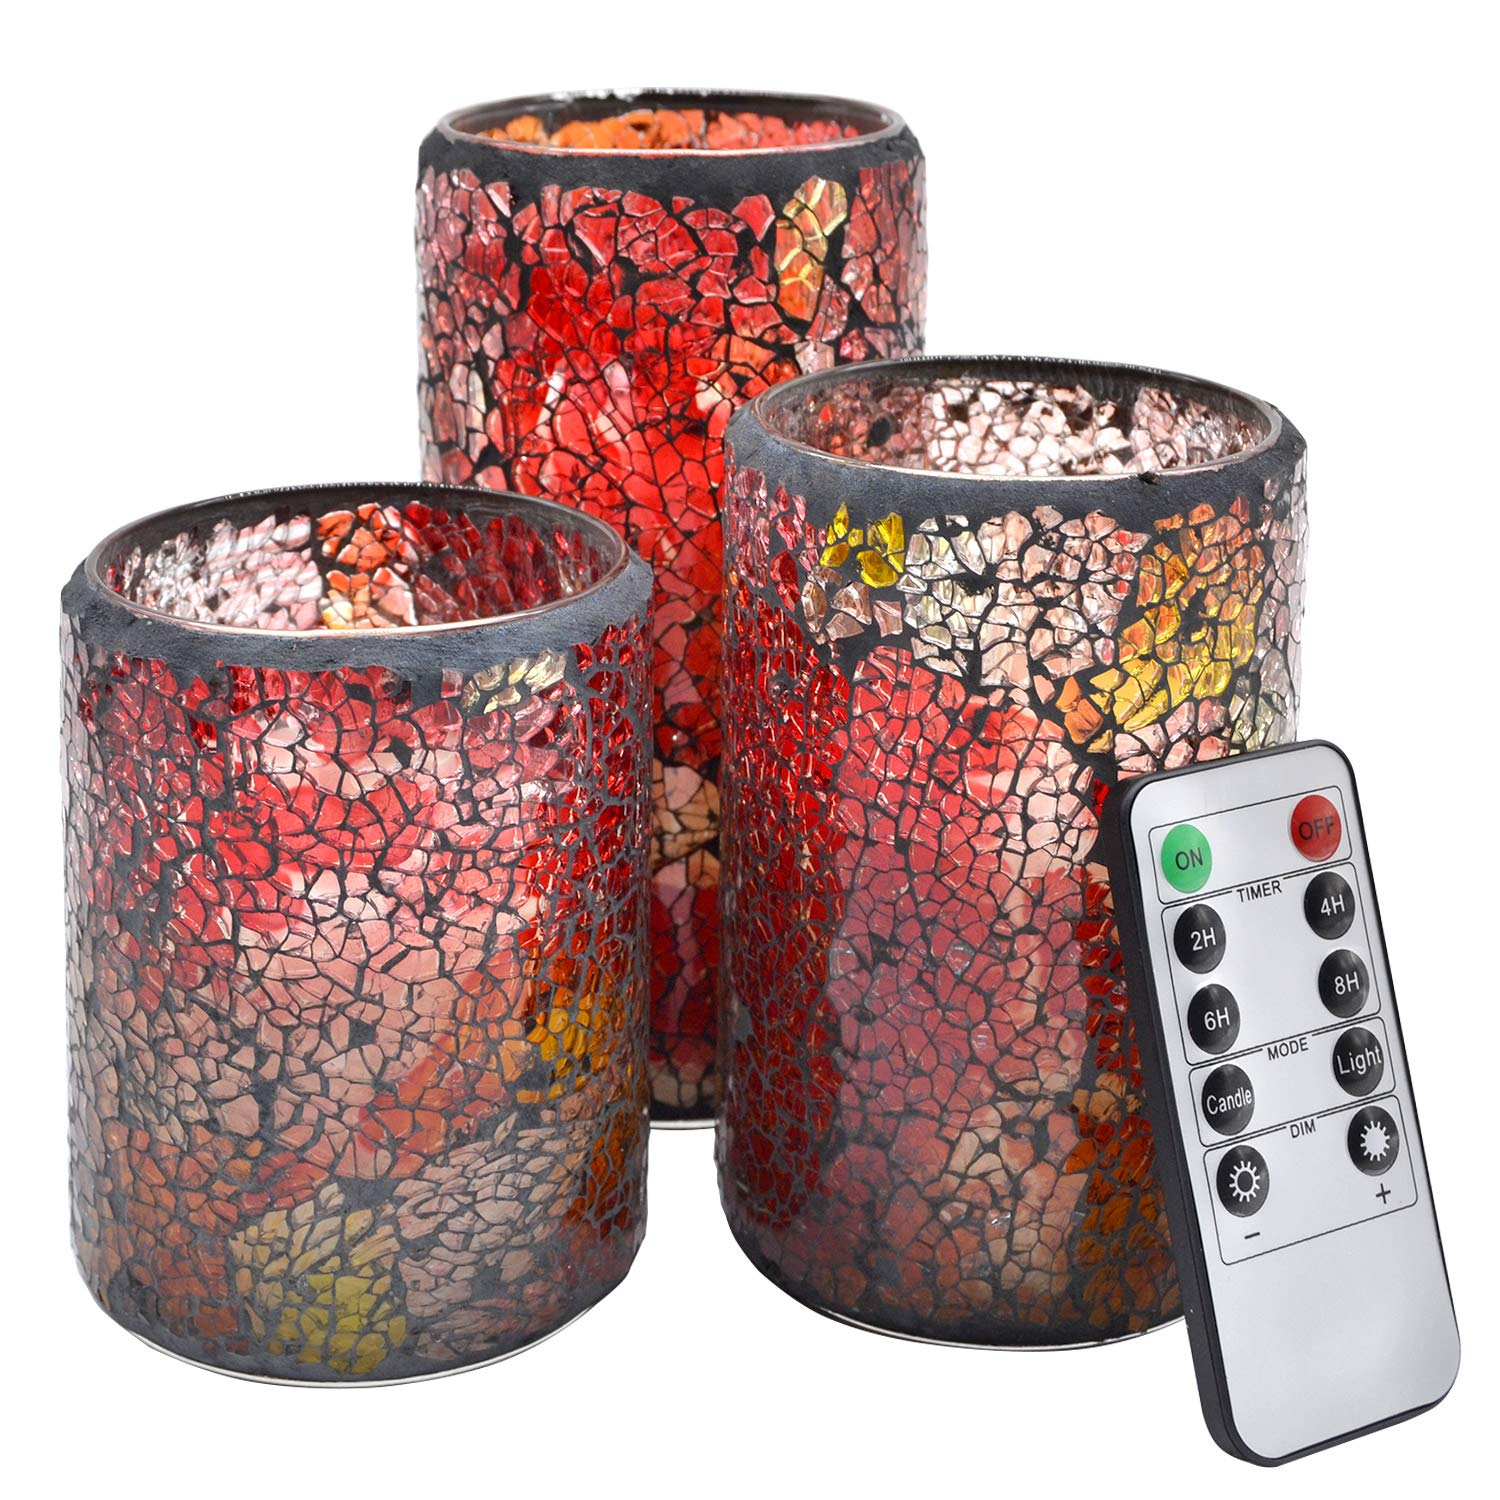 NIGHTKEY LED Mosaic Glass Dancing Flame Real Wax Pillar Candle with 10-Key Control Remote and 2/4/6/8H Timer, Vanilla Scented, Pack of 3 (3''X 4''5''6'')